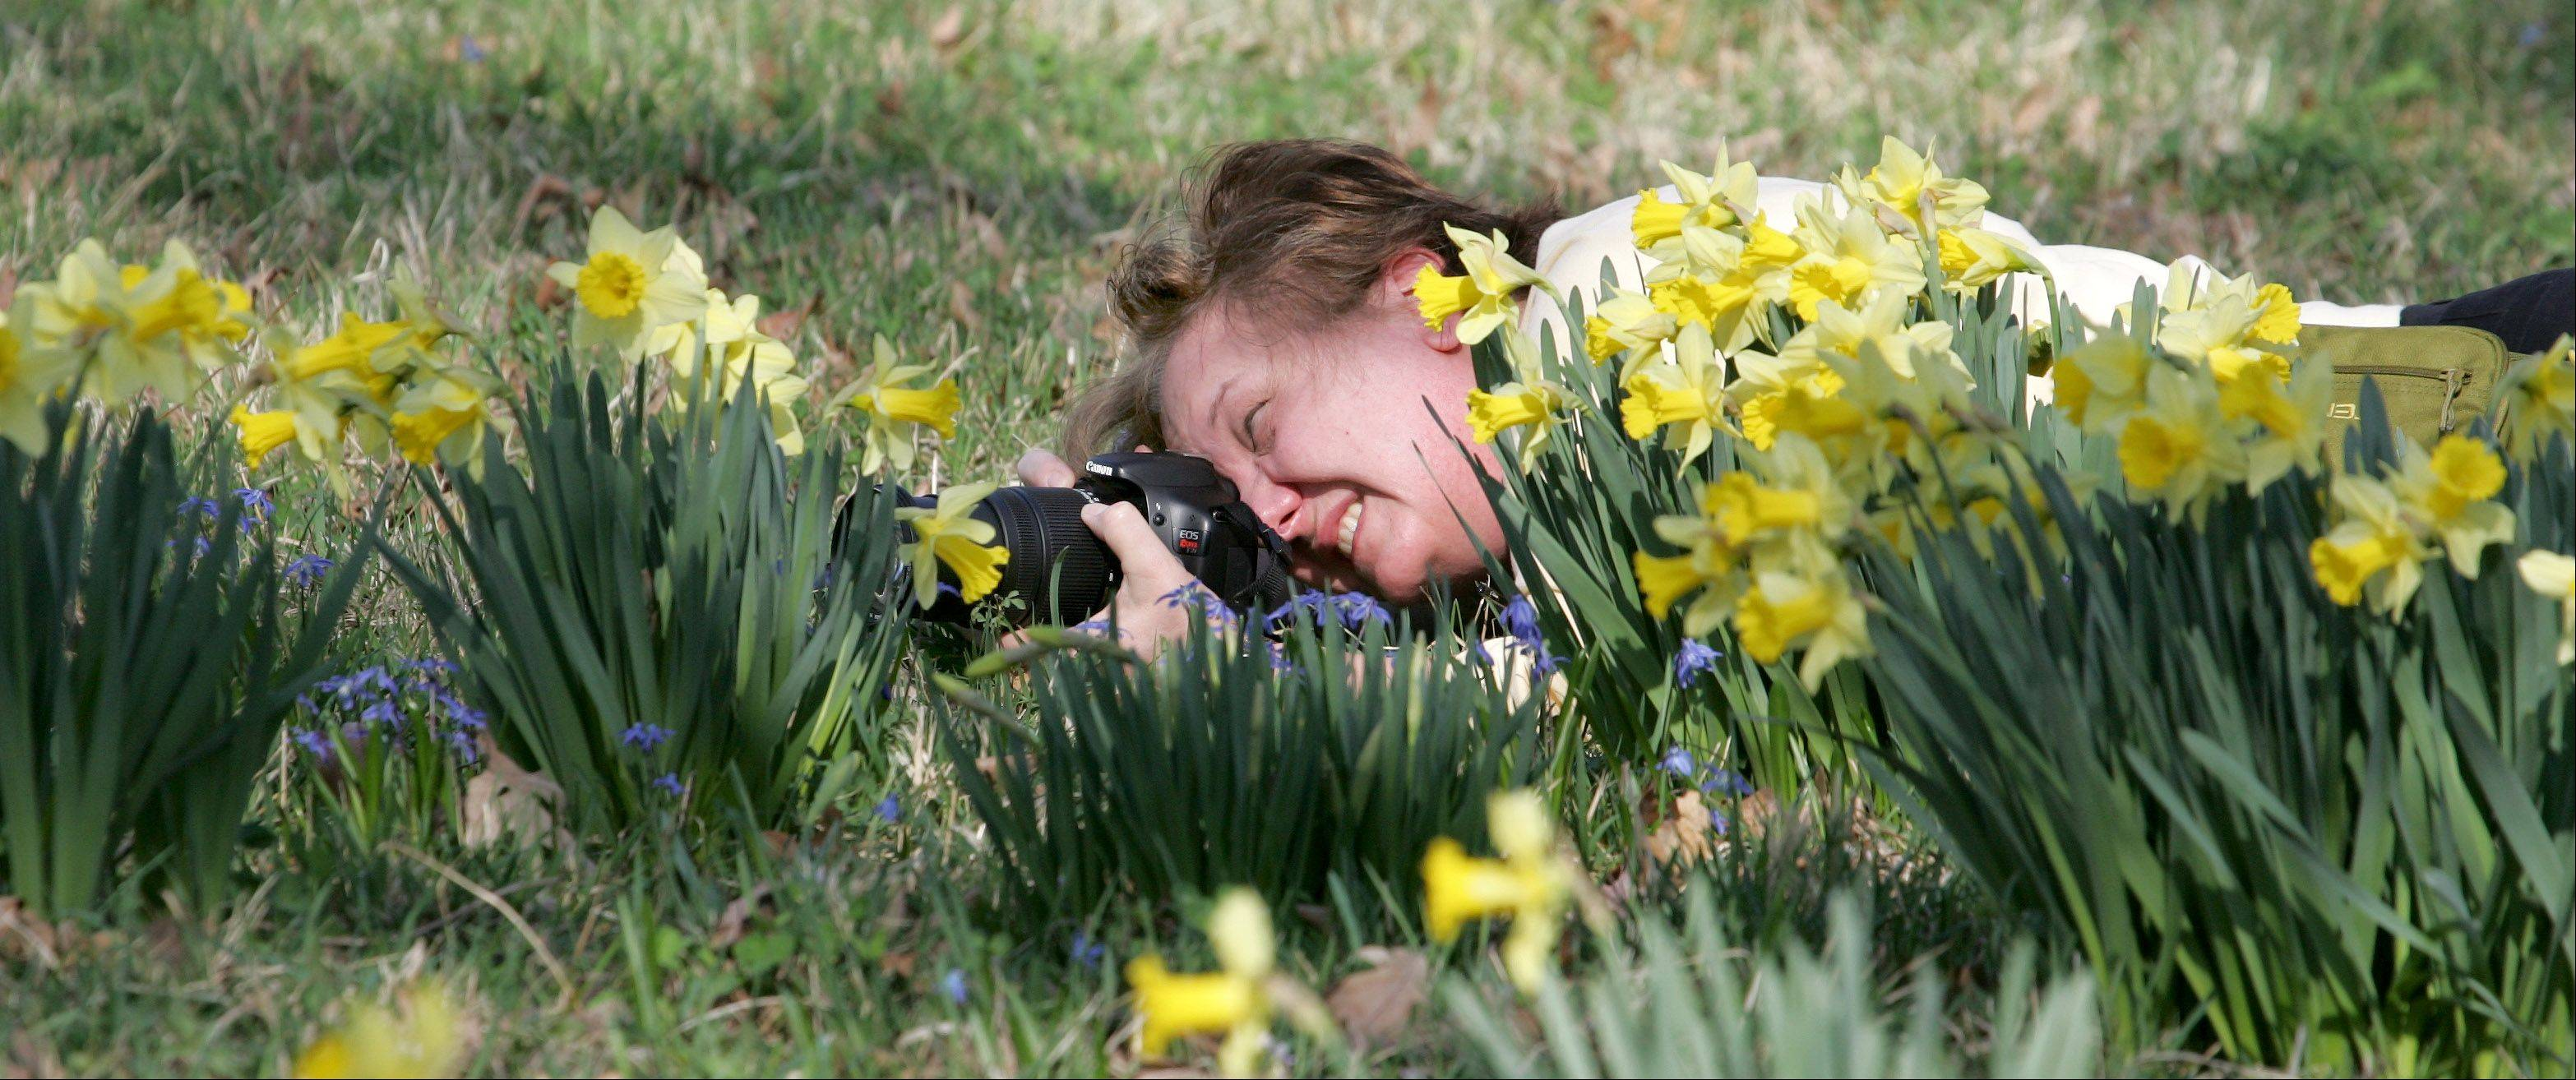 Deb Bohentin of Elmhurst gets a low angle as she photographs the daffodils at the Morton Arboretum in Lisle.